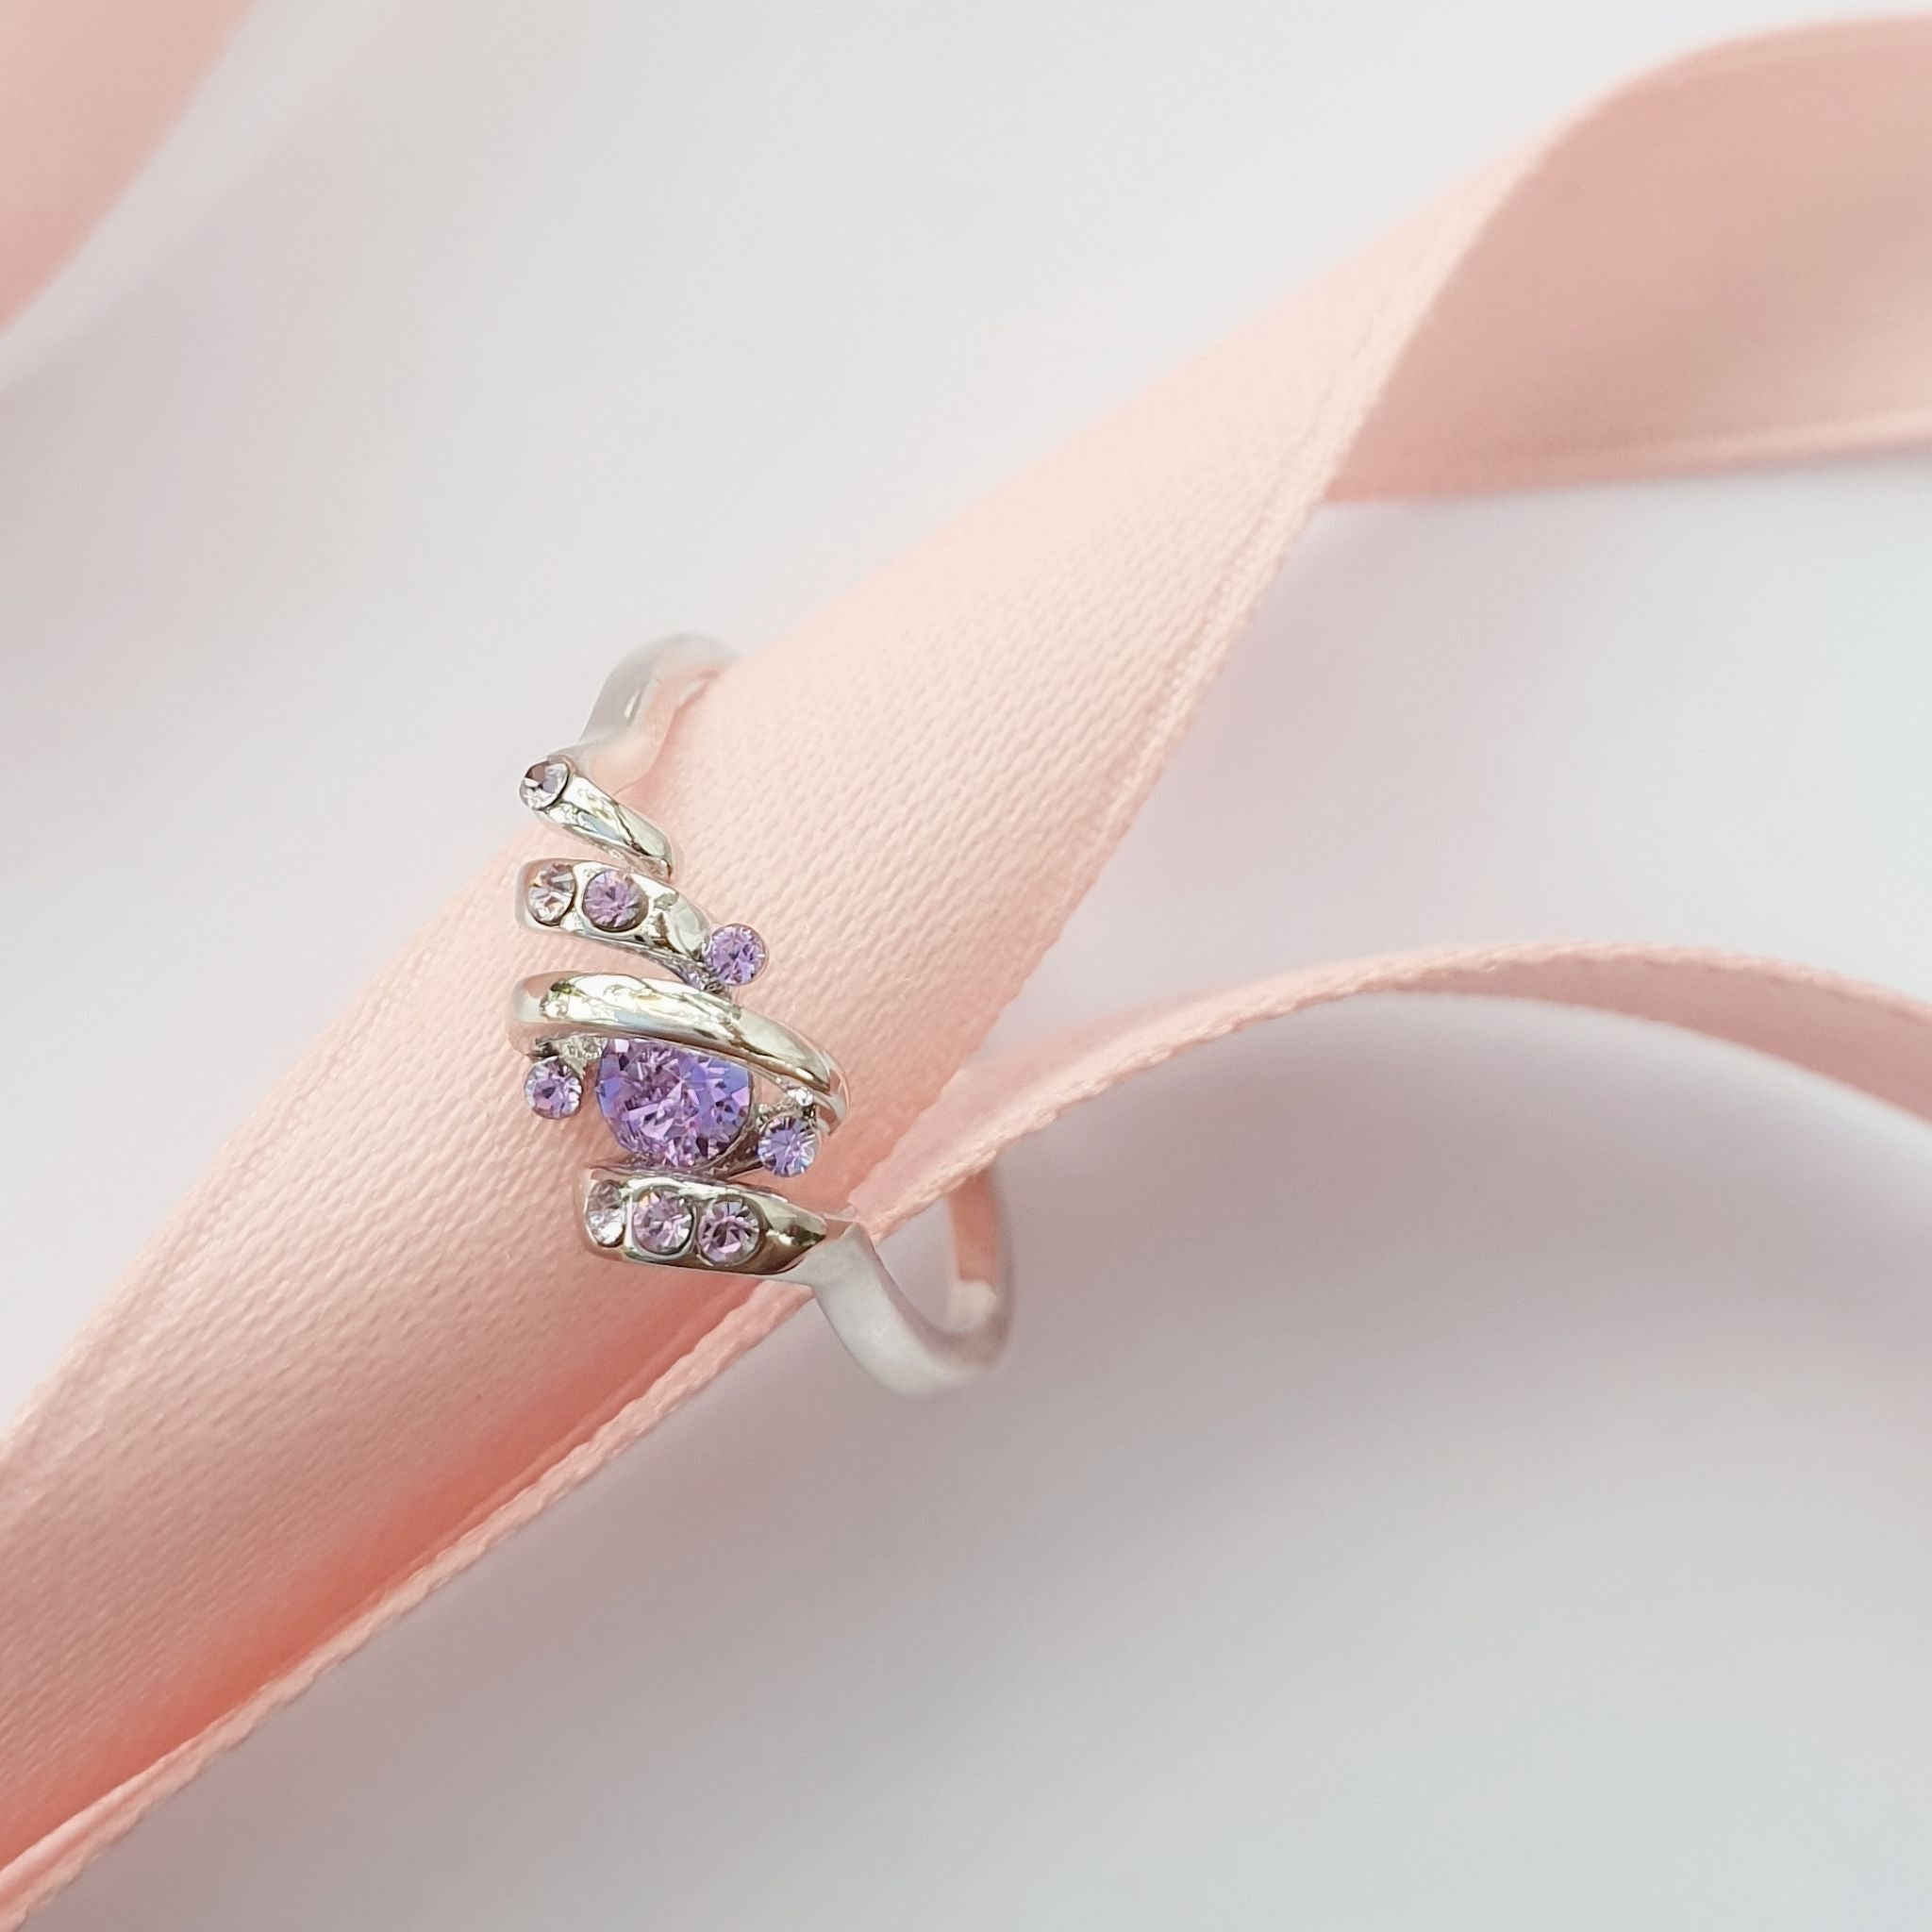 Ballerina Ring (Violet Purple, Pure Rhodium Plated) - Lush Addiction, Crystals from Swarovski